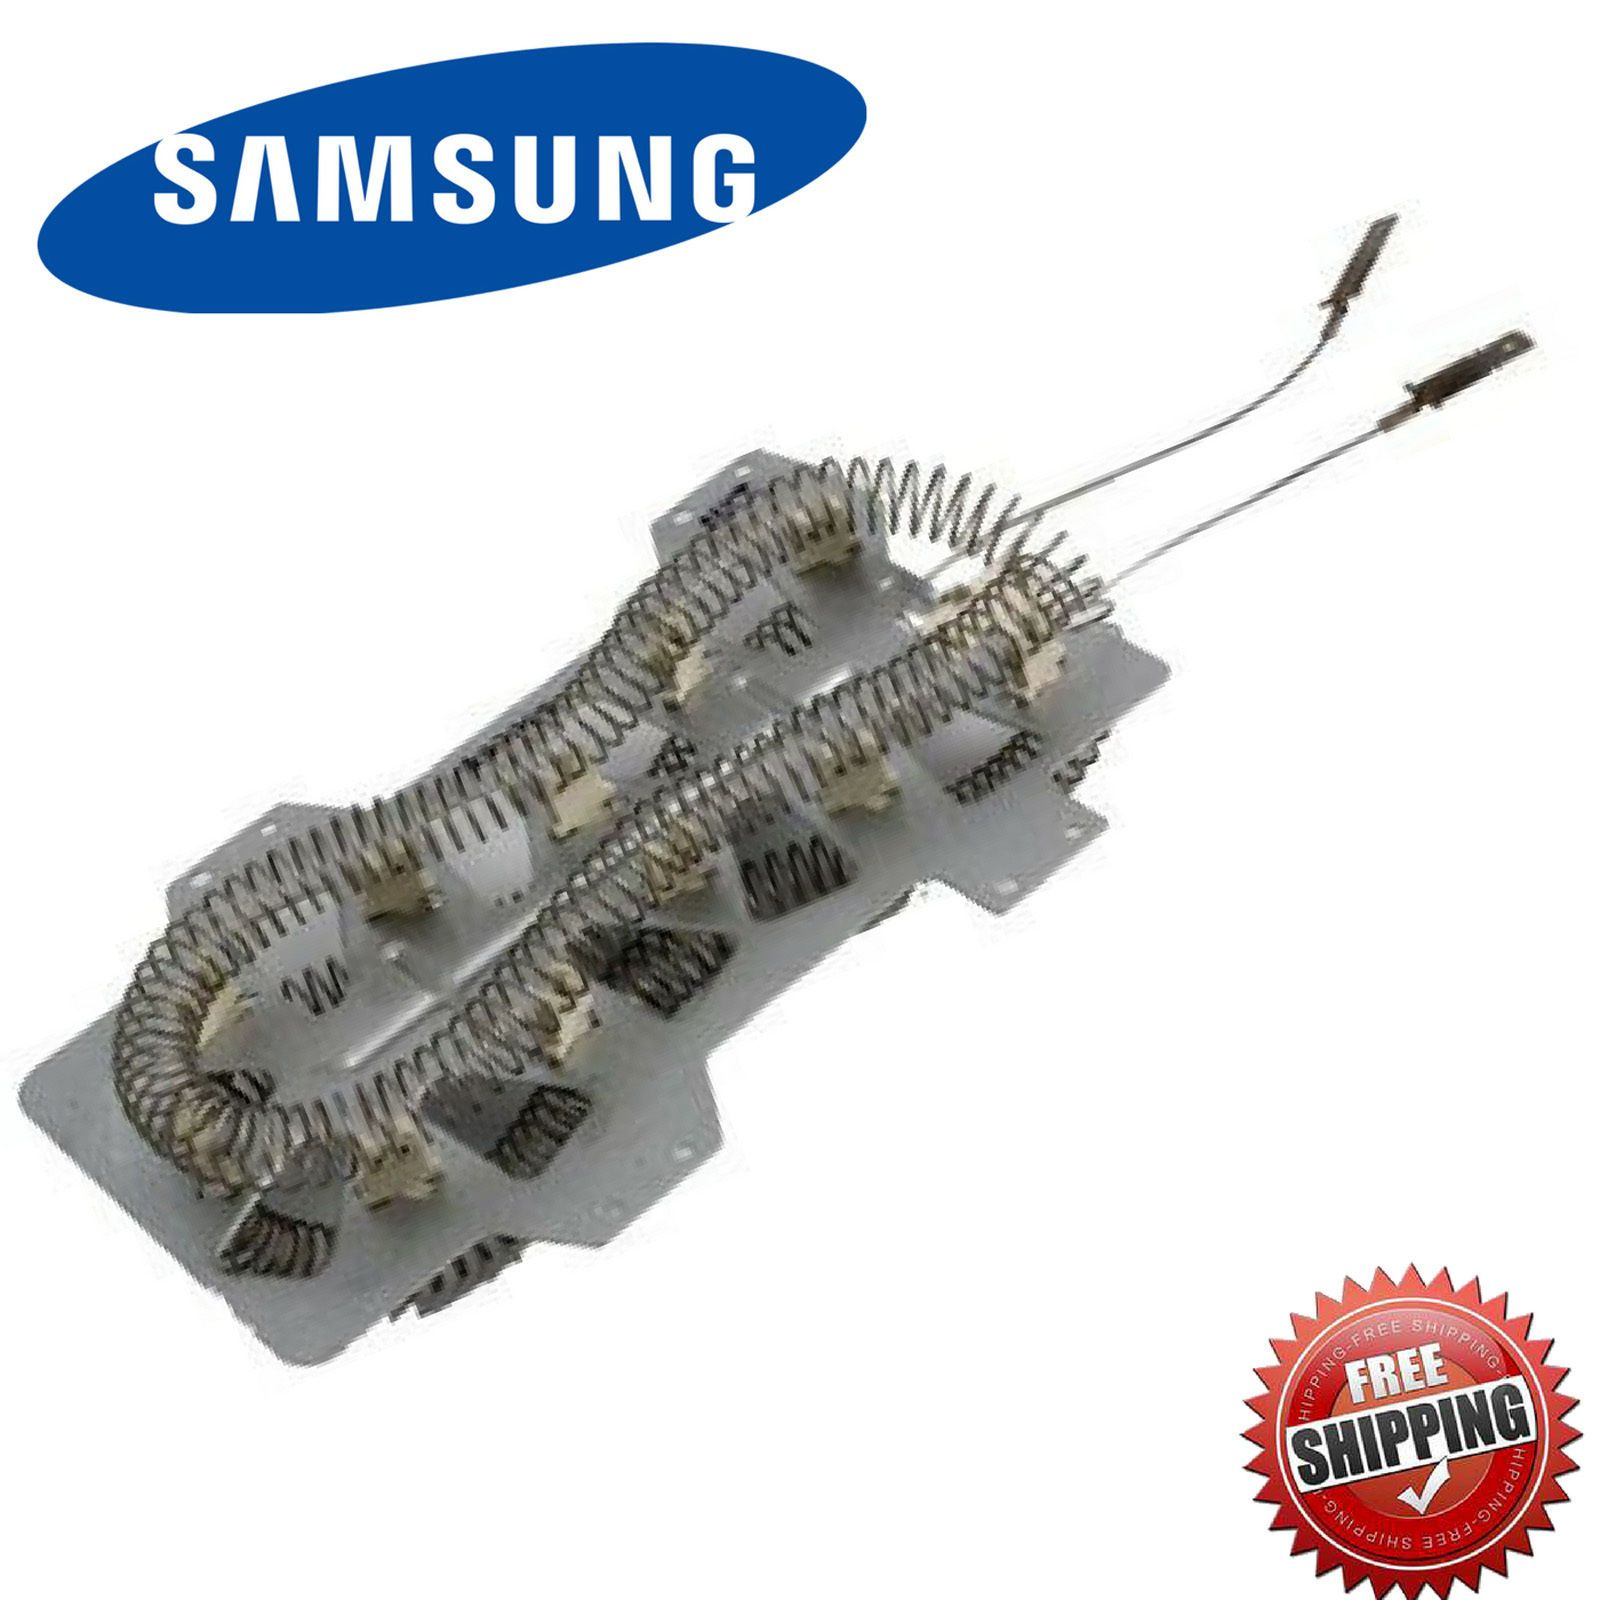 This Samsung Dryer Heating Element DC47-00019A is a standard